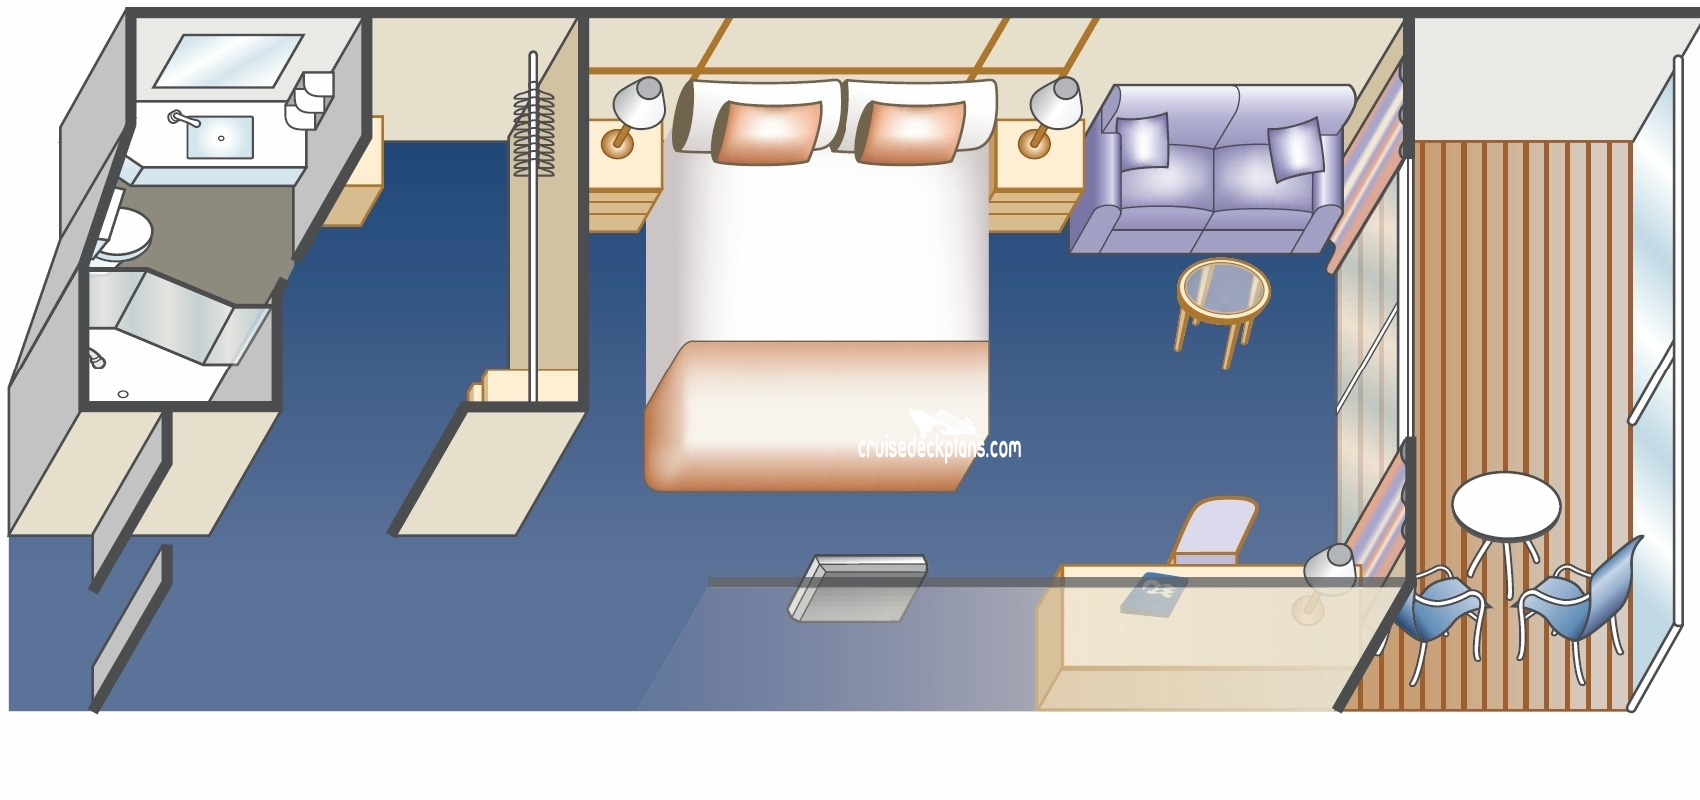 Majestic princess deluxe balcony stateroom for Deluxe balcony